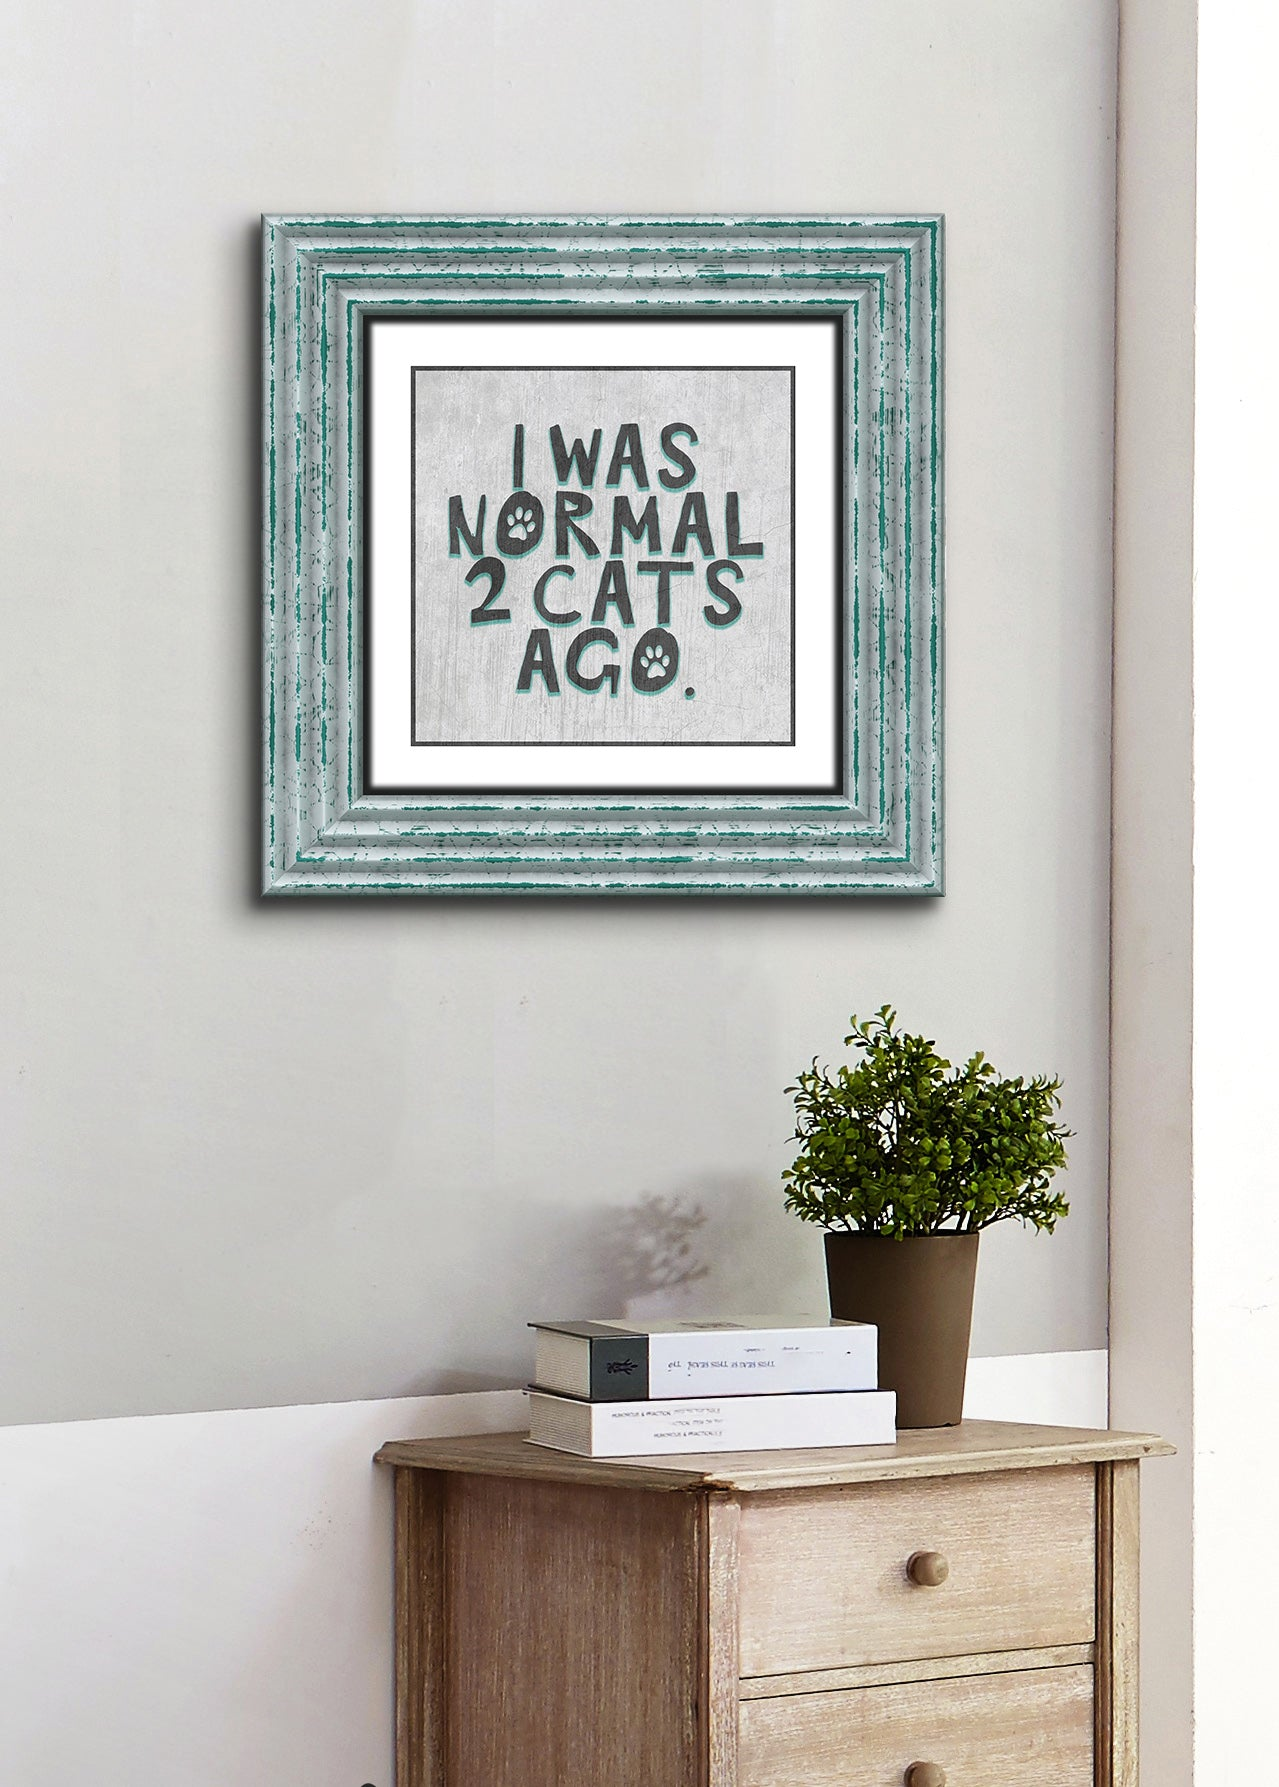 Pet Wall Art: I Was Normal 2 Cats Ago (Wood Frame Ready To Hang)